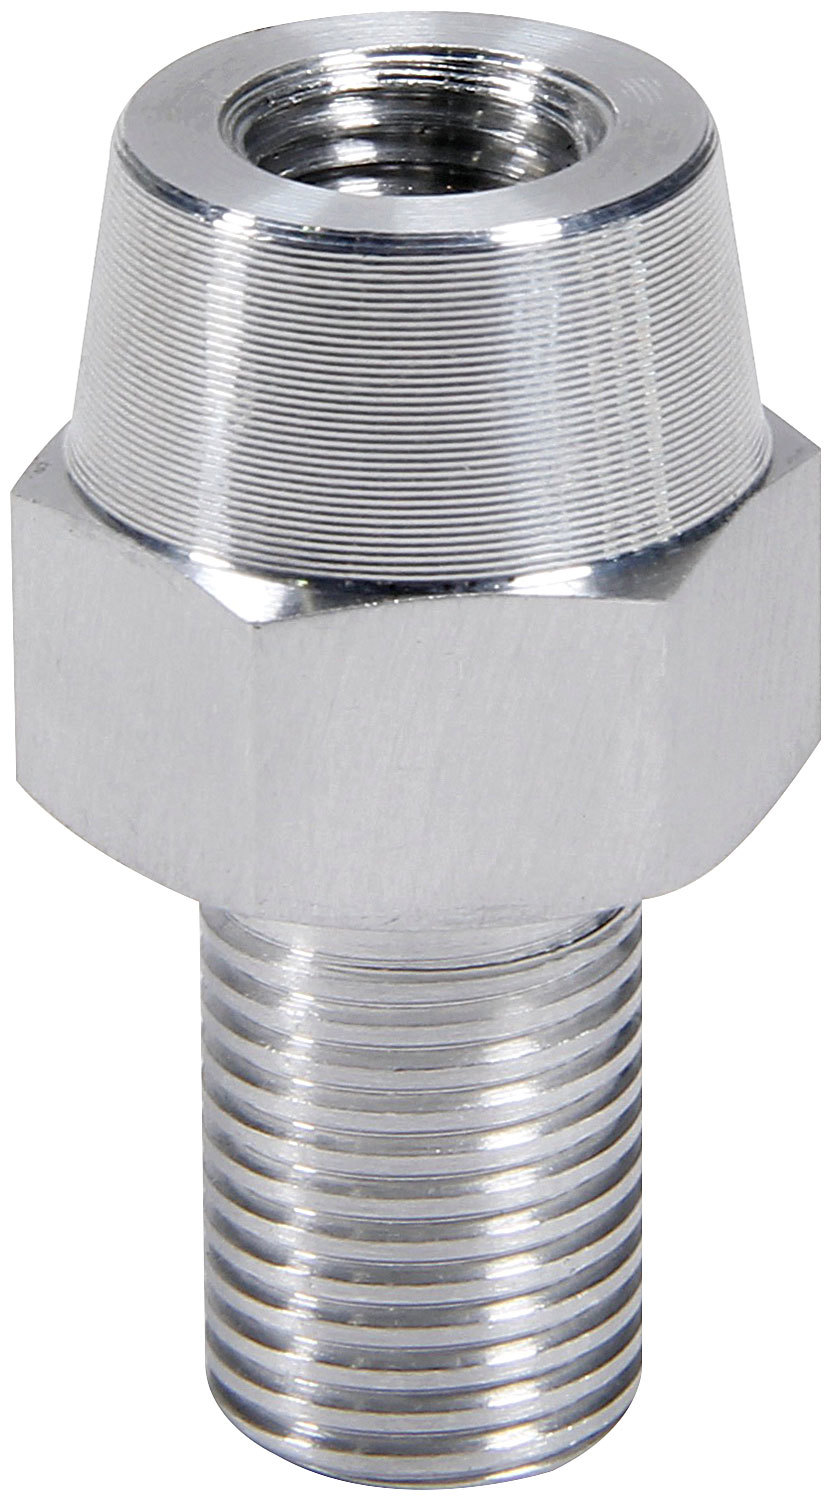 Allstar Performance Hood Pin Adapter 1/2-20 Male to 3/8-24 Female